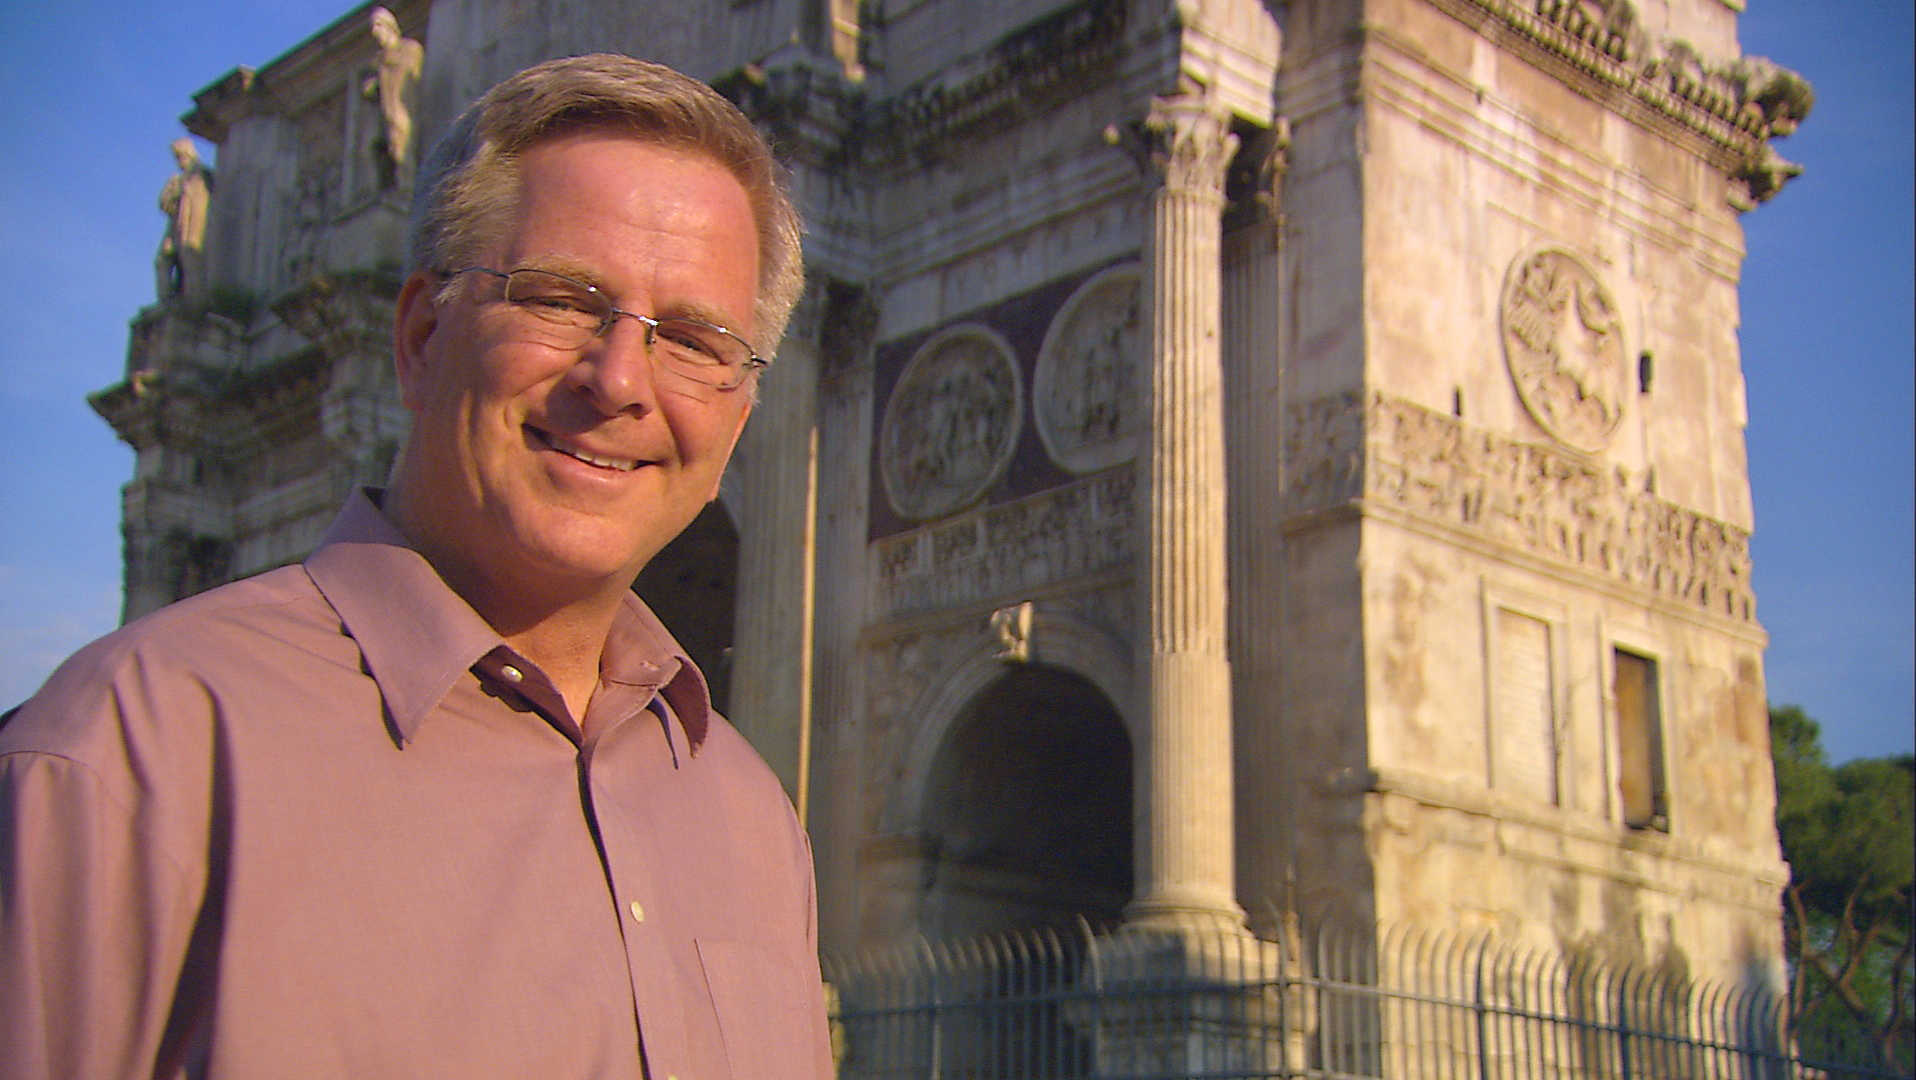 Rick Steves at the Forum